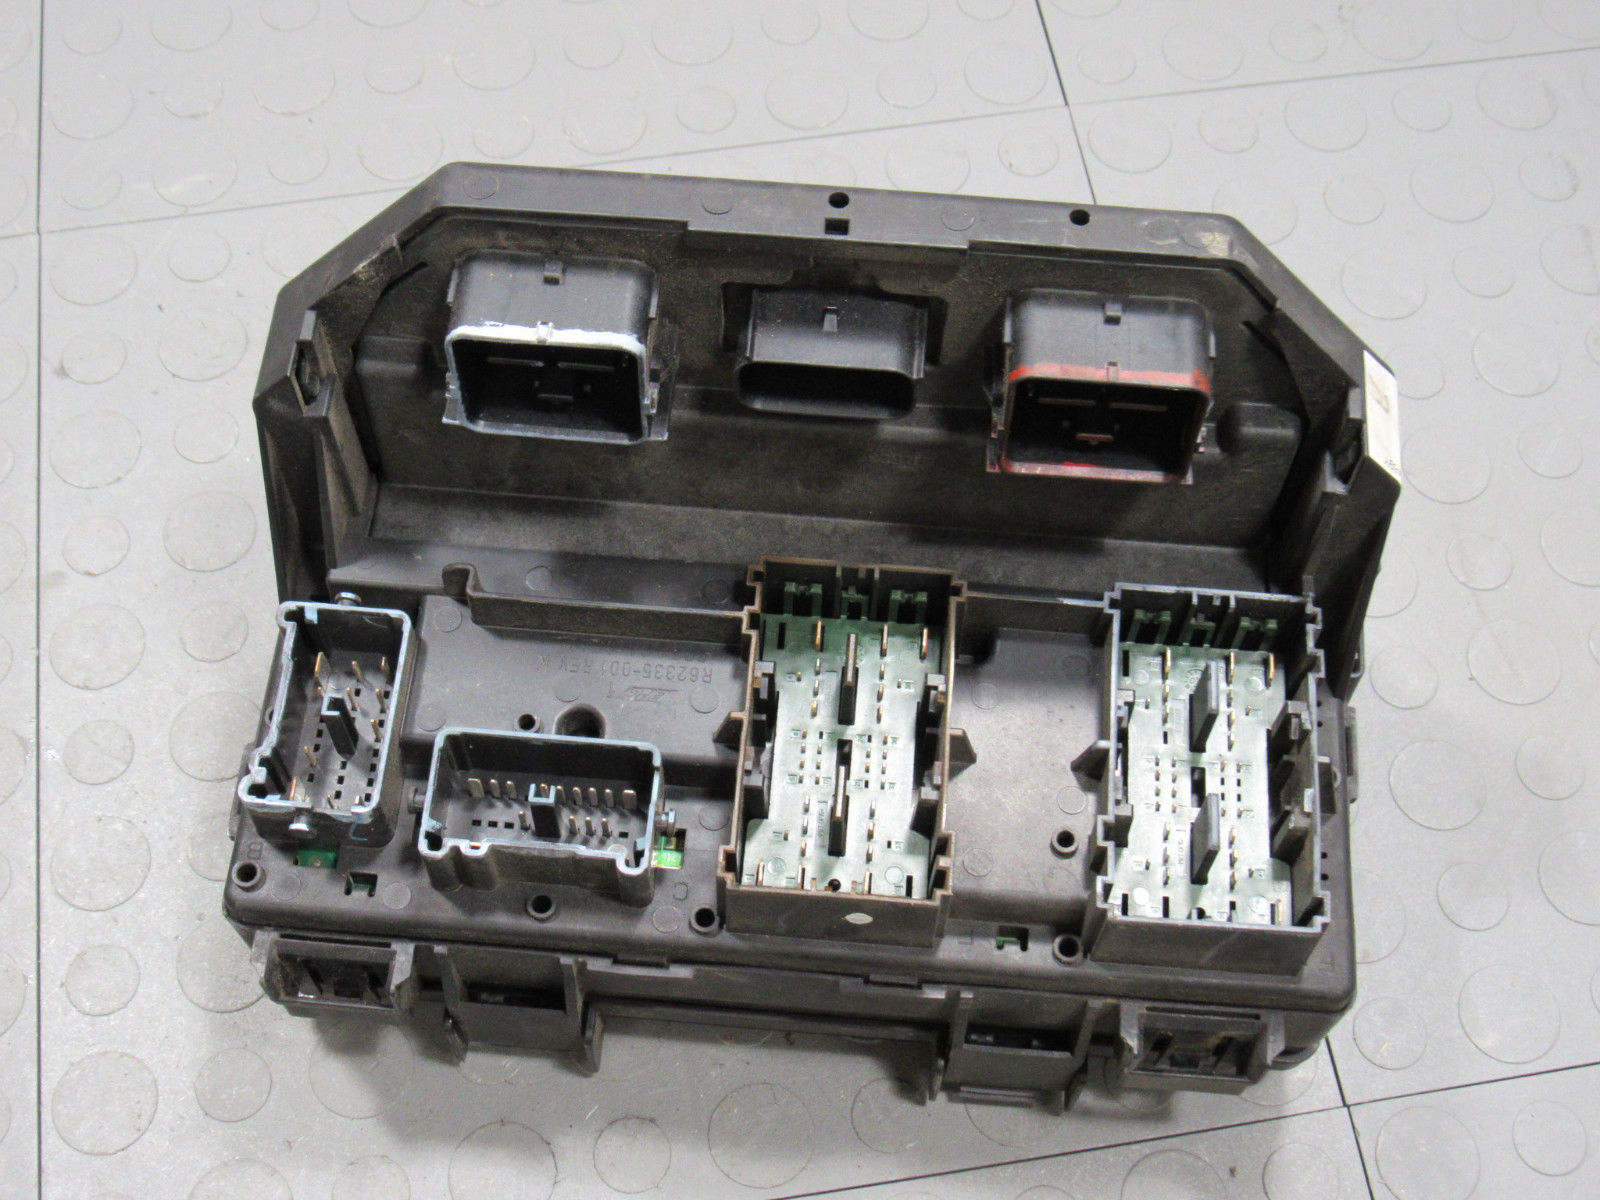 Tipm Fuse Box Nice Place To Get Wiring Diagram 2011 Dodge Journey 09 Caravan T C Integrated Power Module Rh Importapart Com 08 Ram